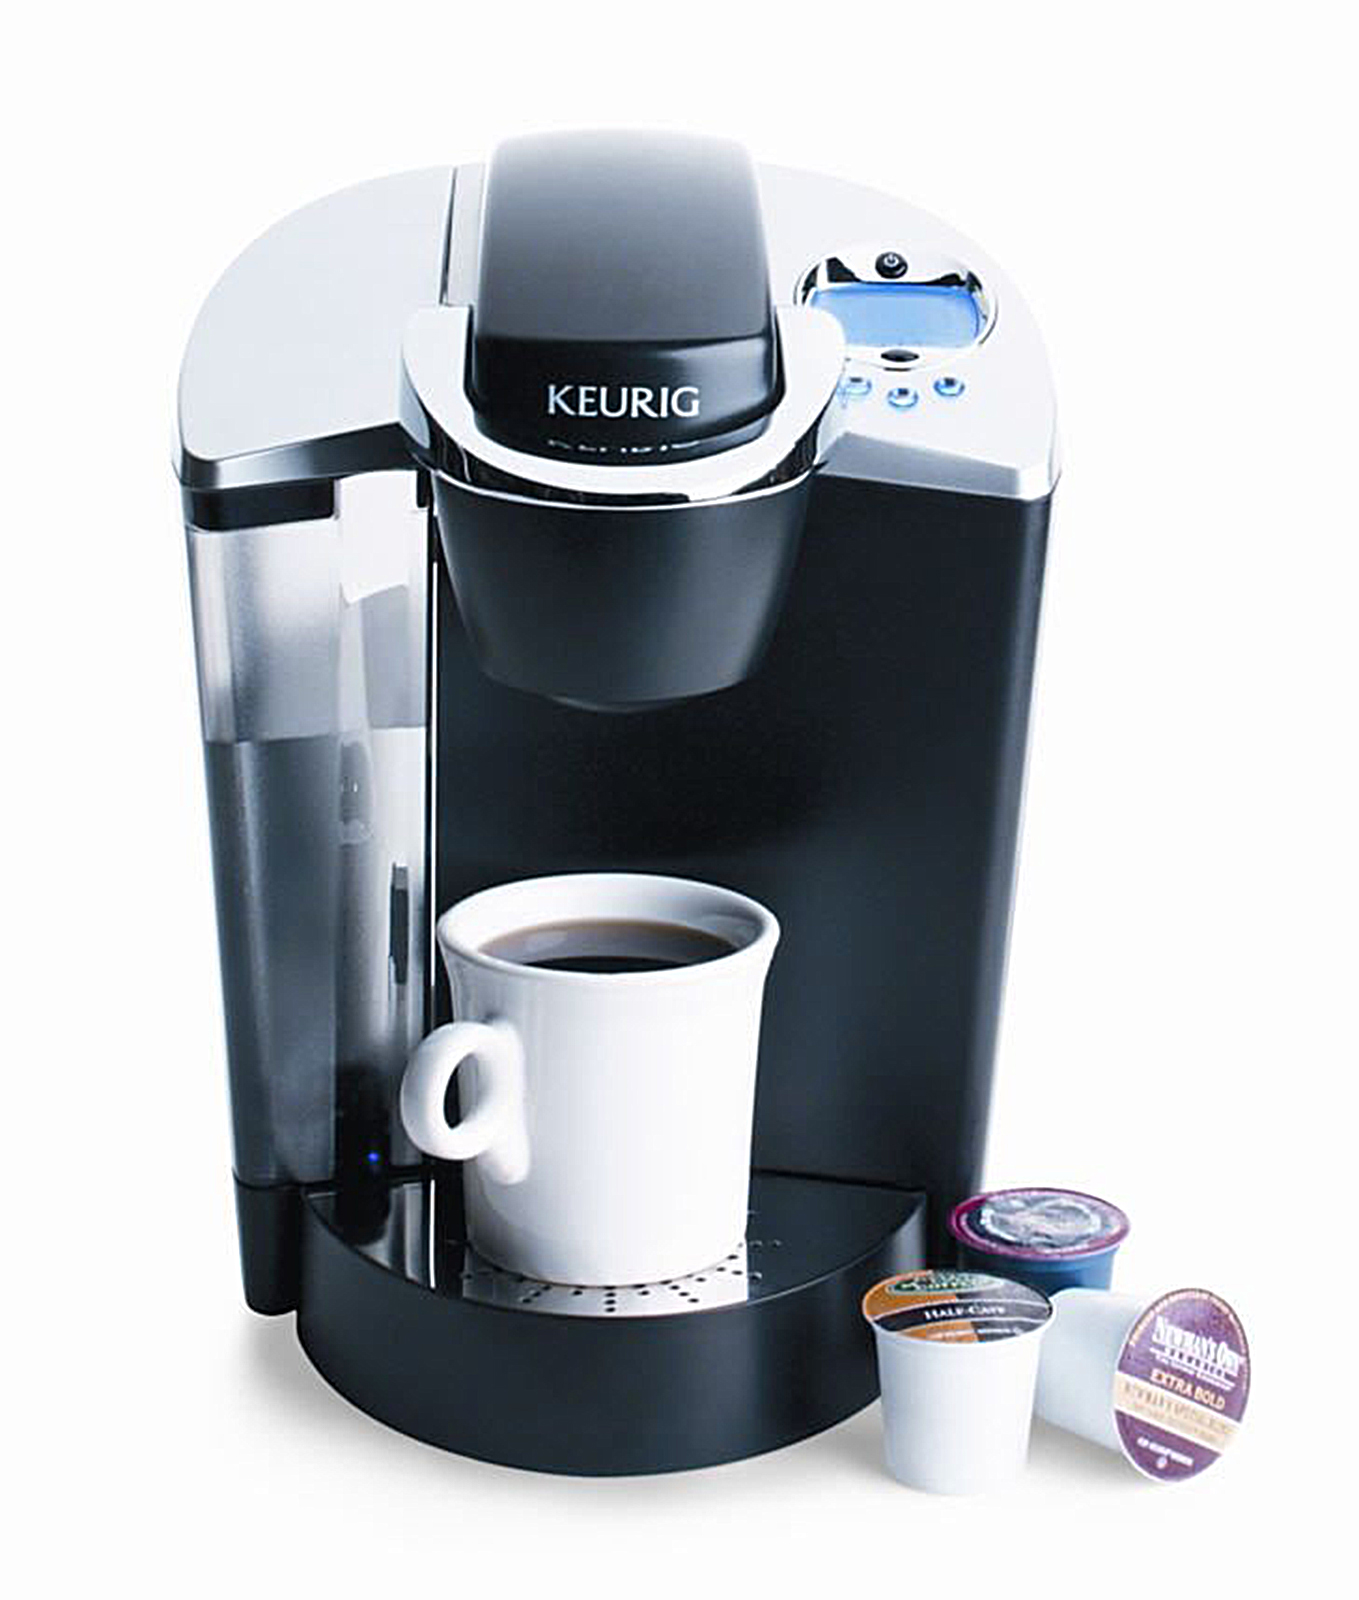 Keurig B60 Special Edition Single K-Cup Brewer